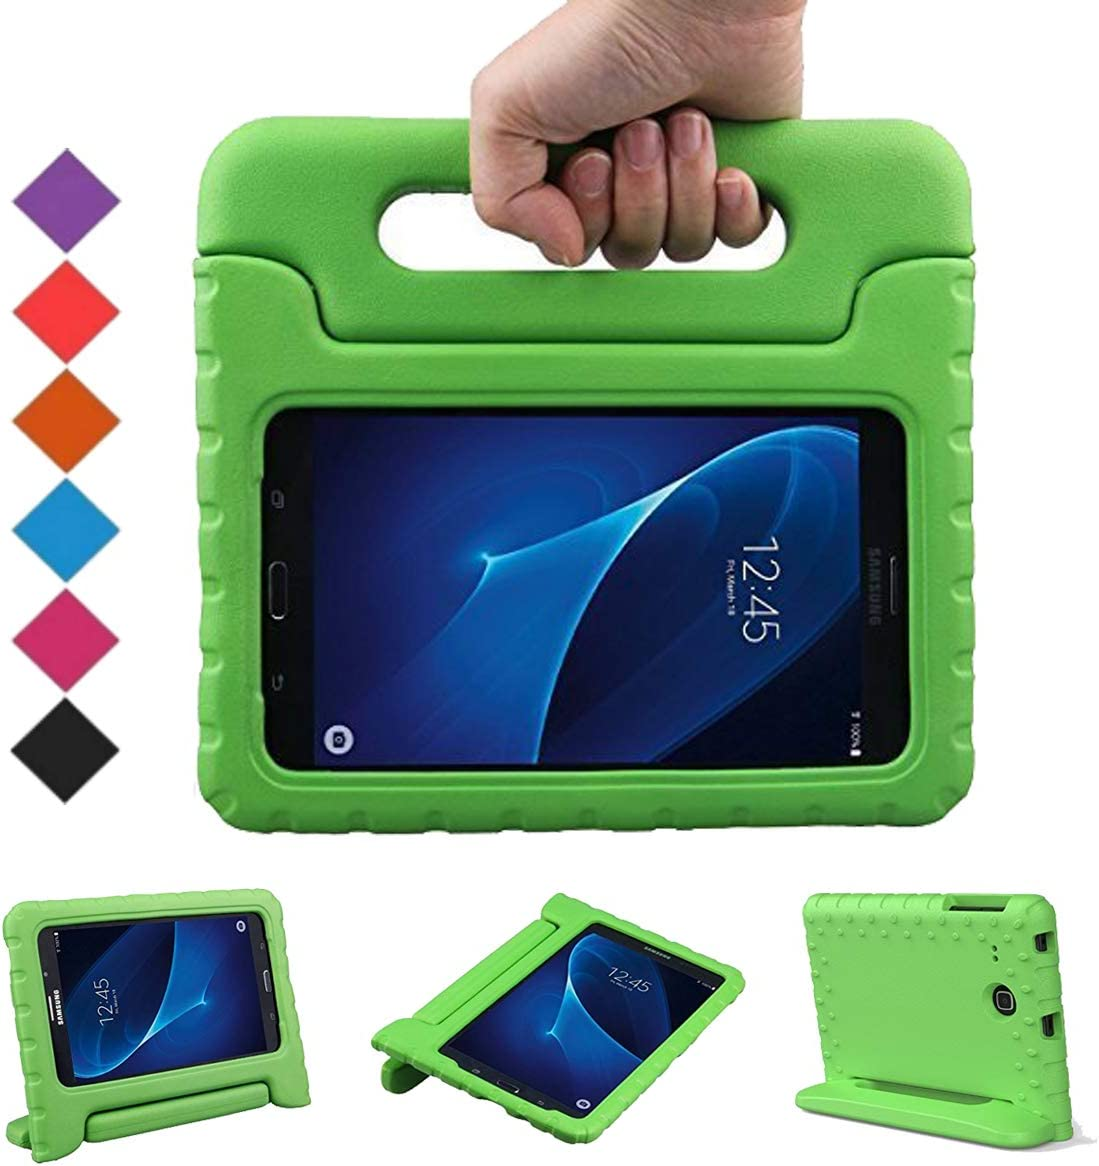 BMOUO Kids Case for Samsung Galaxy Tab E Lite 7.0 inch - ShockProof Case Light Weight Kids Case Super Protection Cover Handle Stand Case for Samsung Galaxy Tab E Lite 7-Inch Tablet - Green